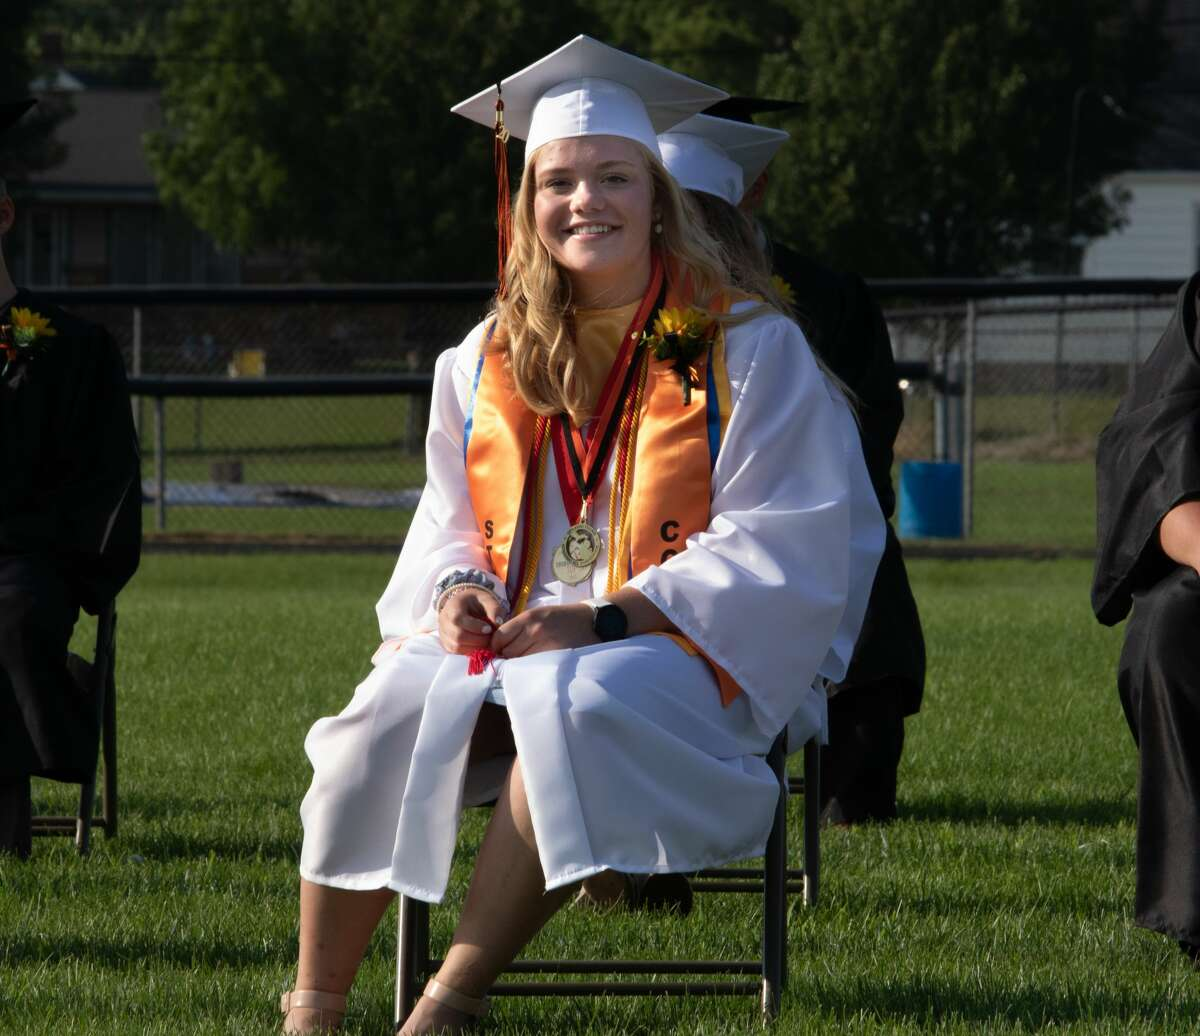 Ubly High School seniors graduate July 26 on the football field. A sunny day showered family, friends, and community members as they watched the local graduates accept their diploma's on a long anticipated day.